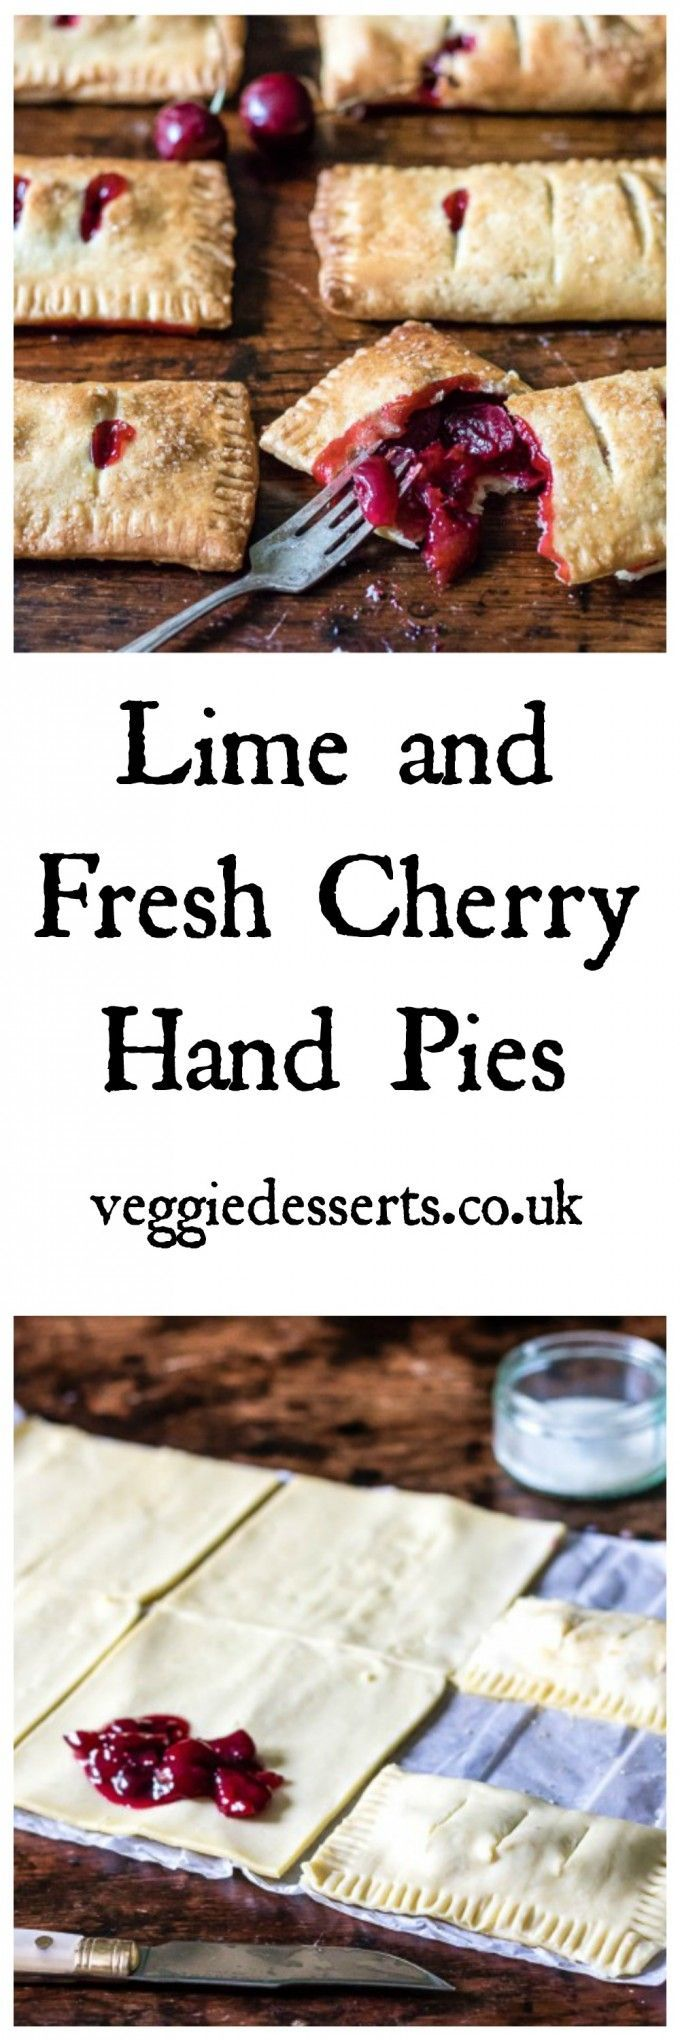 Lime and Fresh Cherry Hand Pies | Veggie Desserts Blog >>> These cherry hand pies are quick and easy to make, particularly with store-bought shortcrust pastry. They're a great way to use up the season's beautiful sweet cherries. Vegan.